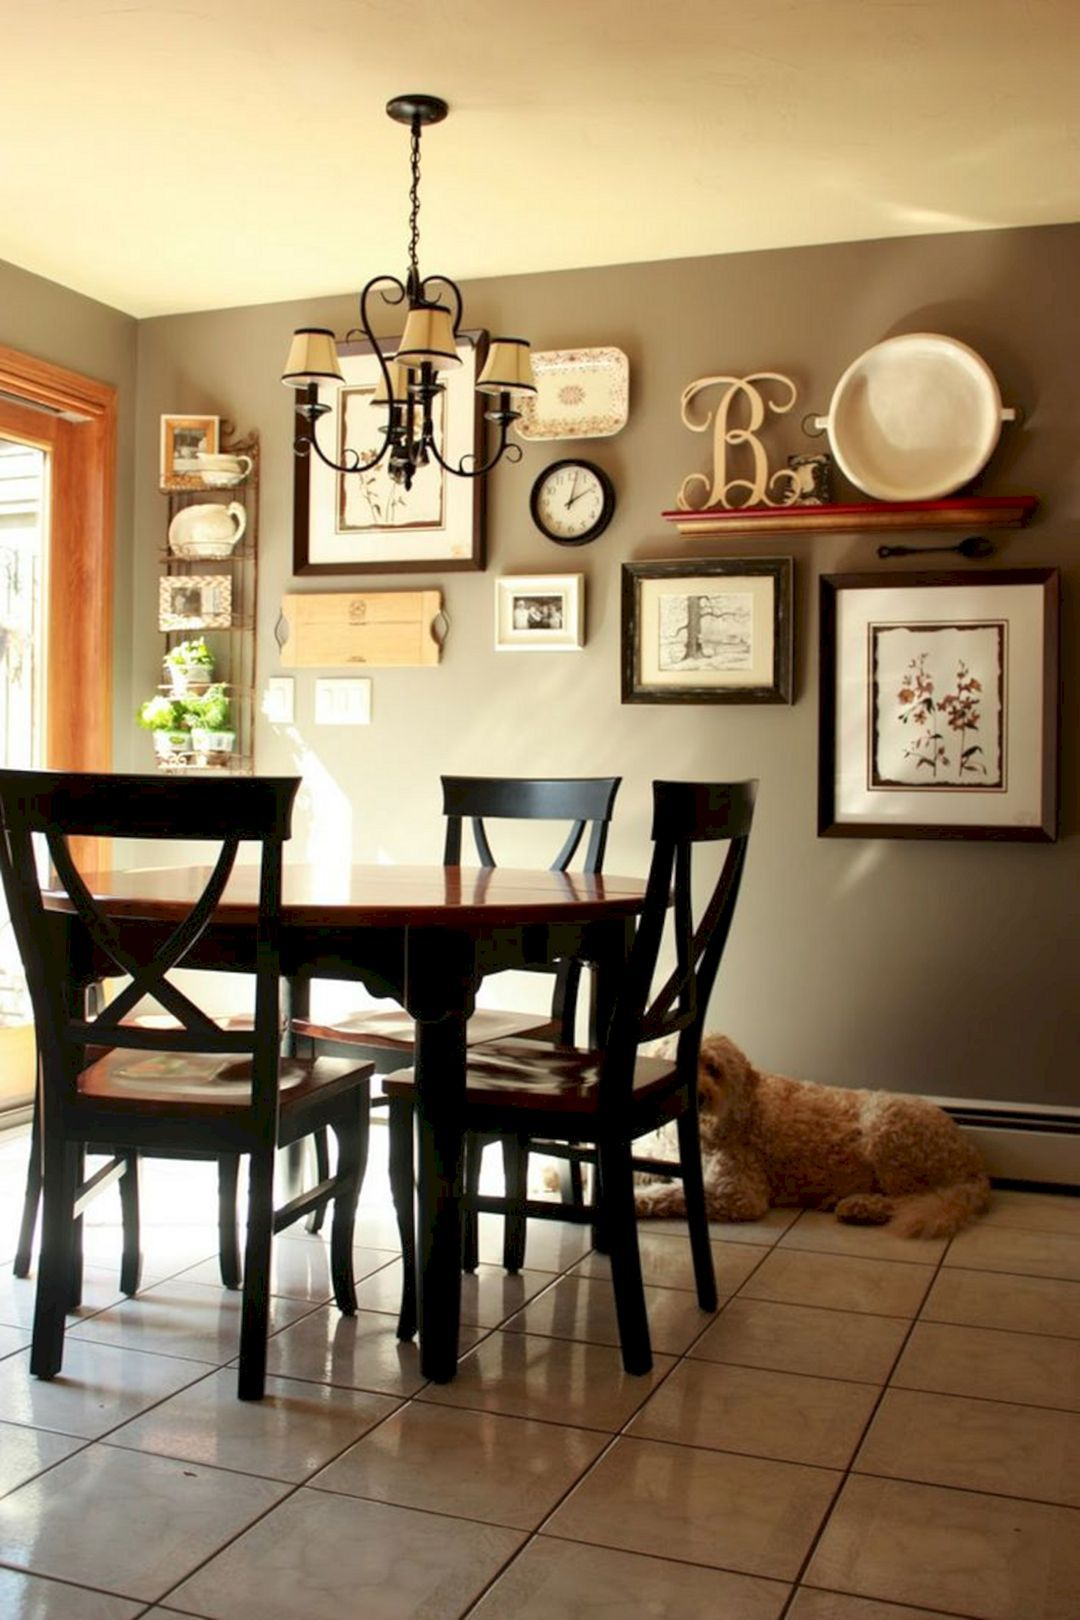 Cute 10 Kitchen Wall Decorating Ideas You Have To See Dining Room Decor Walls